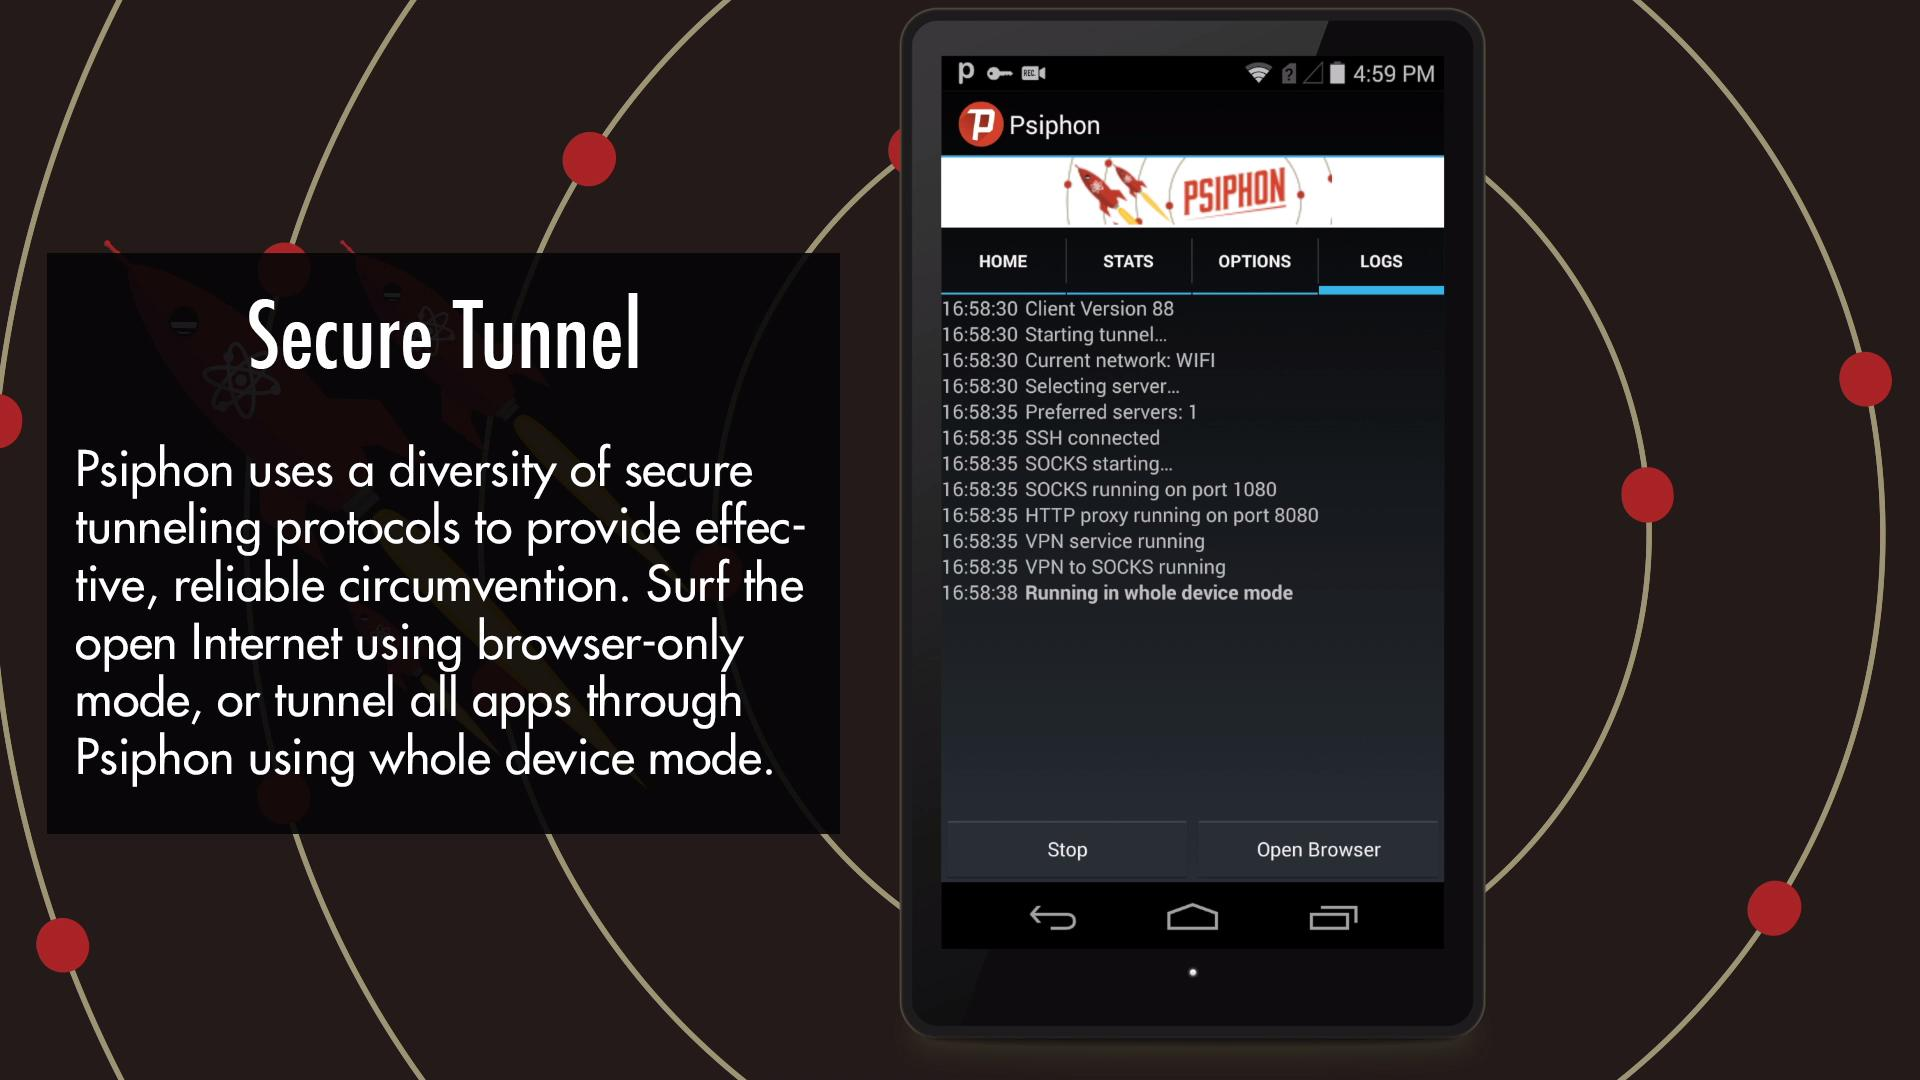 Download psiphon 3 android apk full version